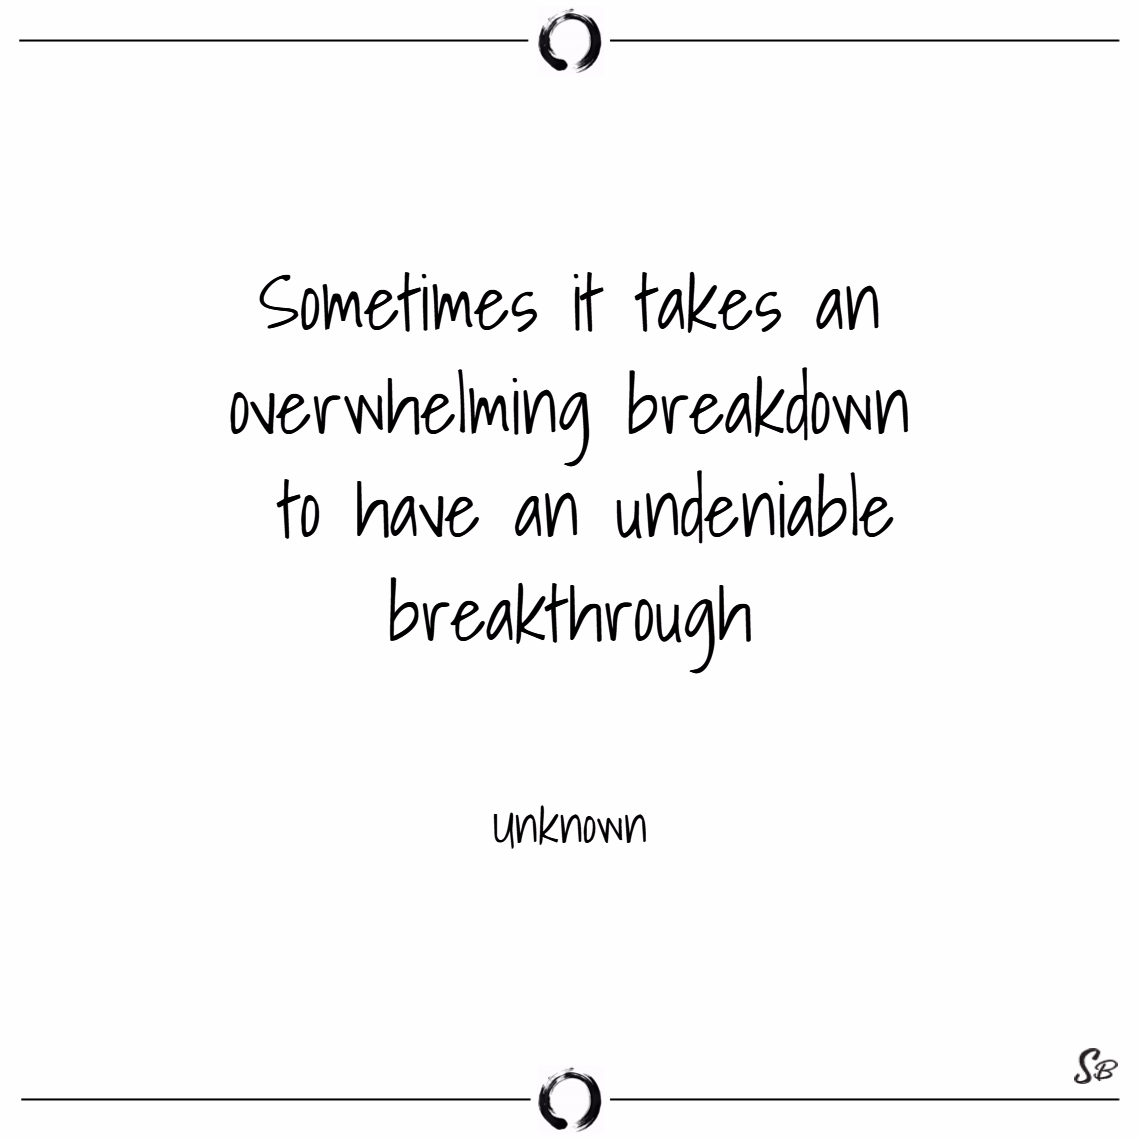 Sometimes it takes an overwhelming breakdown to have an undeniable breakthrough. – unknown